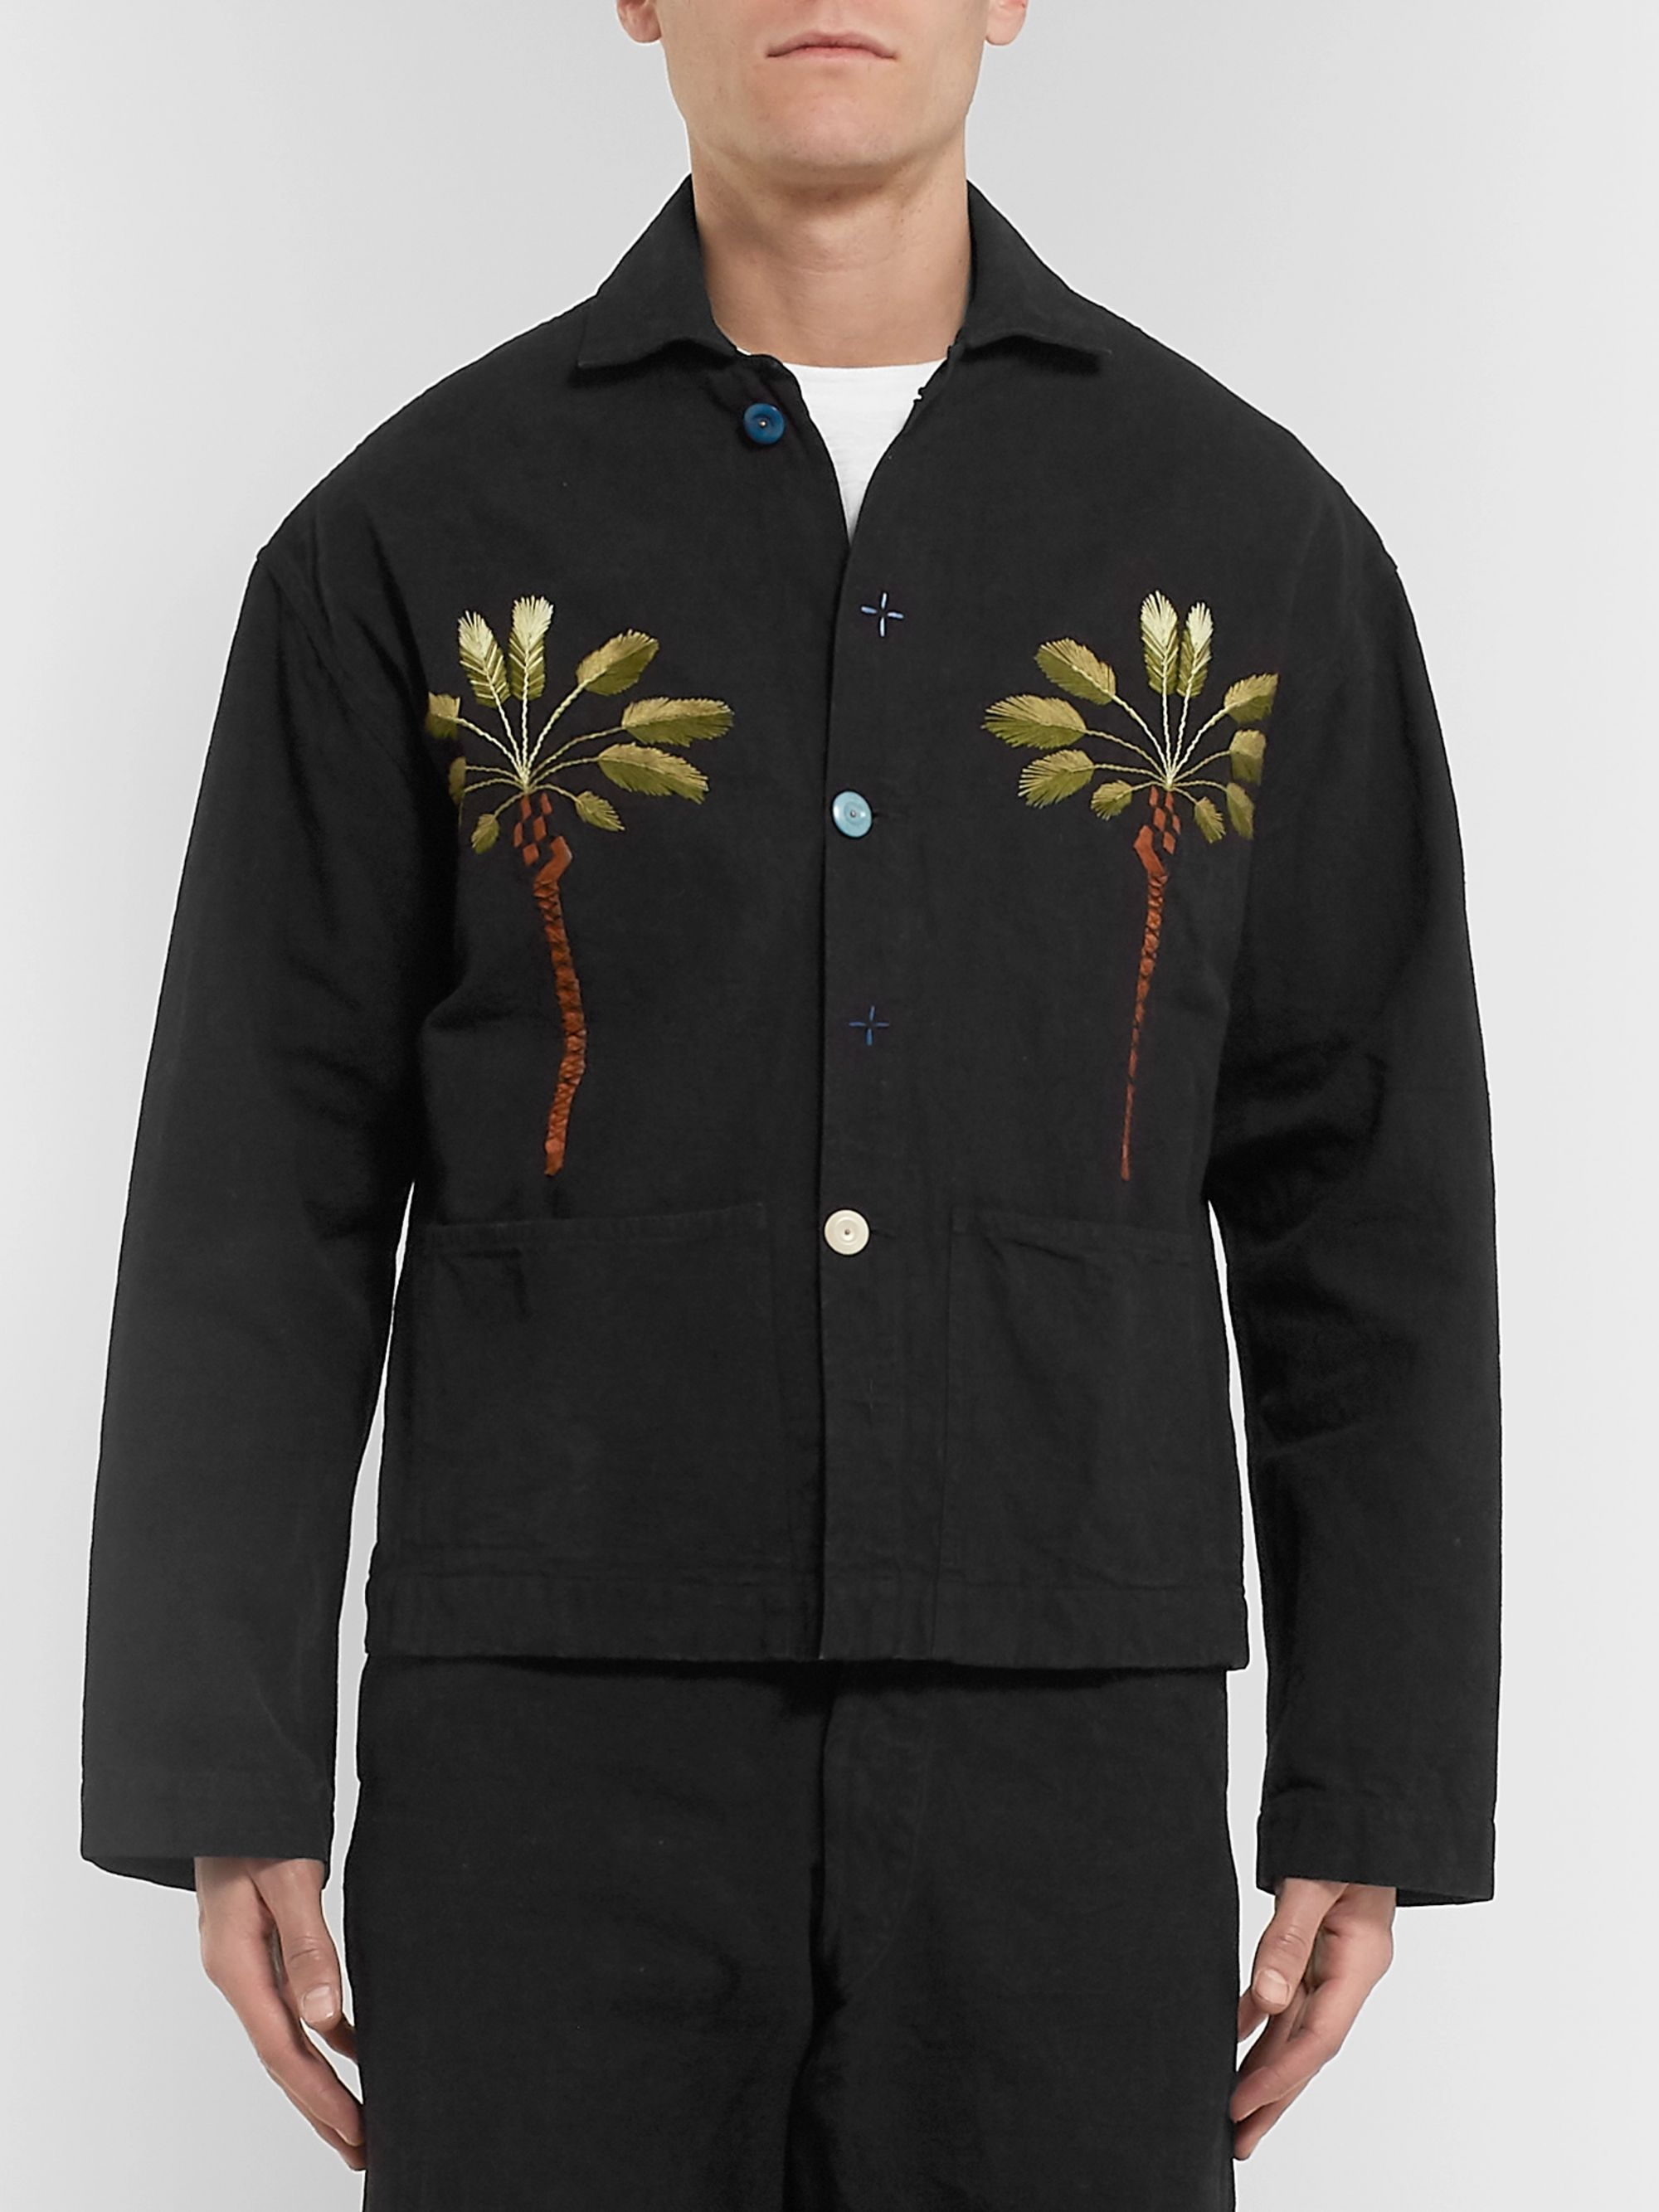 Story Mfg. Short On Time Embroidered Organic Cotton-Canvas Chore Jacket